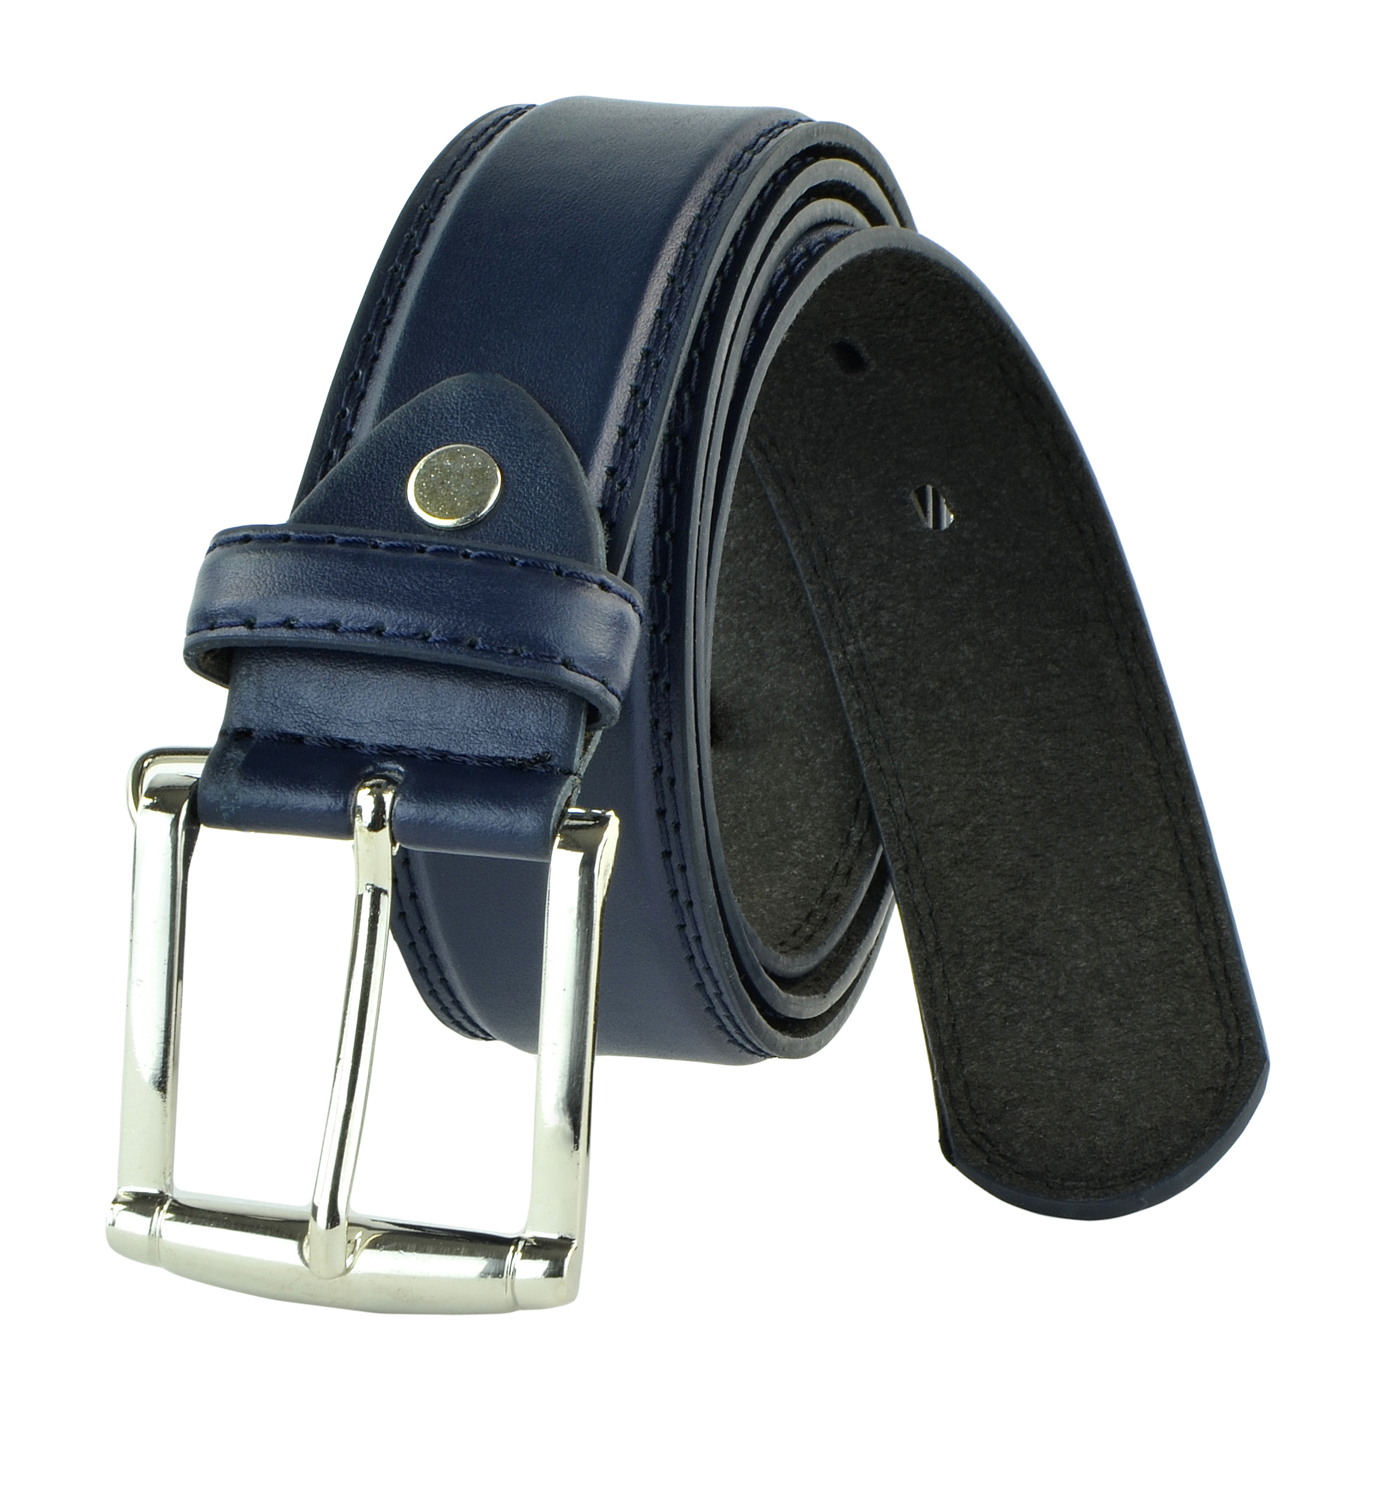 Moda Di Raza - Men's Classic Leather Belt - 1.5 Inch Width - Square Silver Polished Belt Buckle - Formal or Casual Dress Belt - PU Bonded Leather - Navy Medium